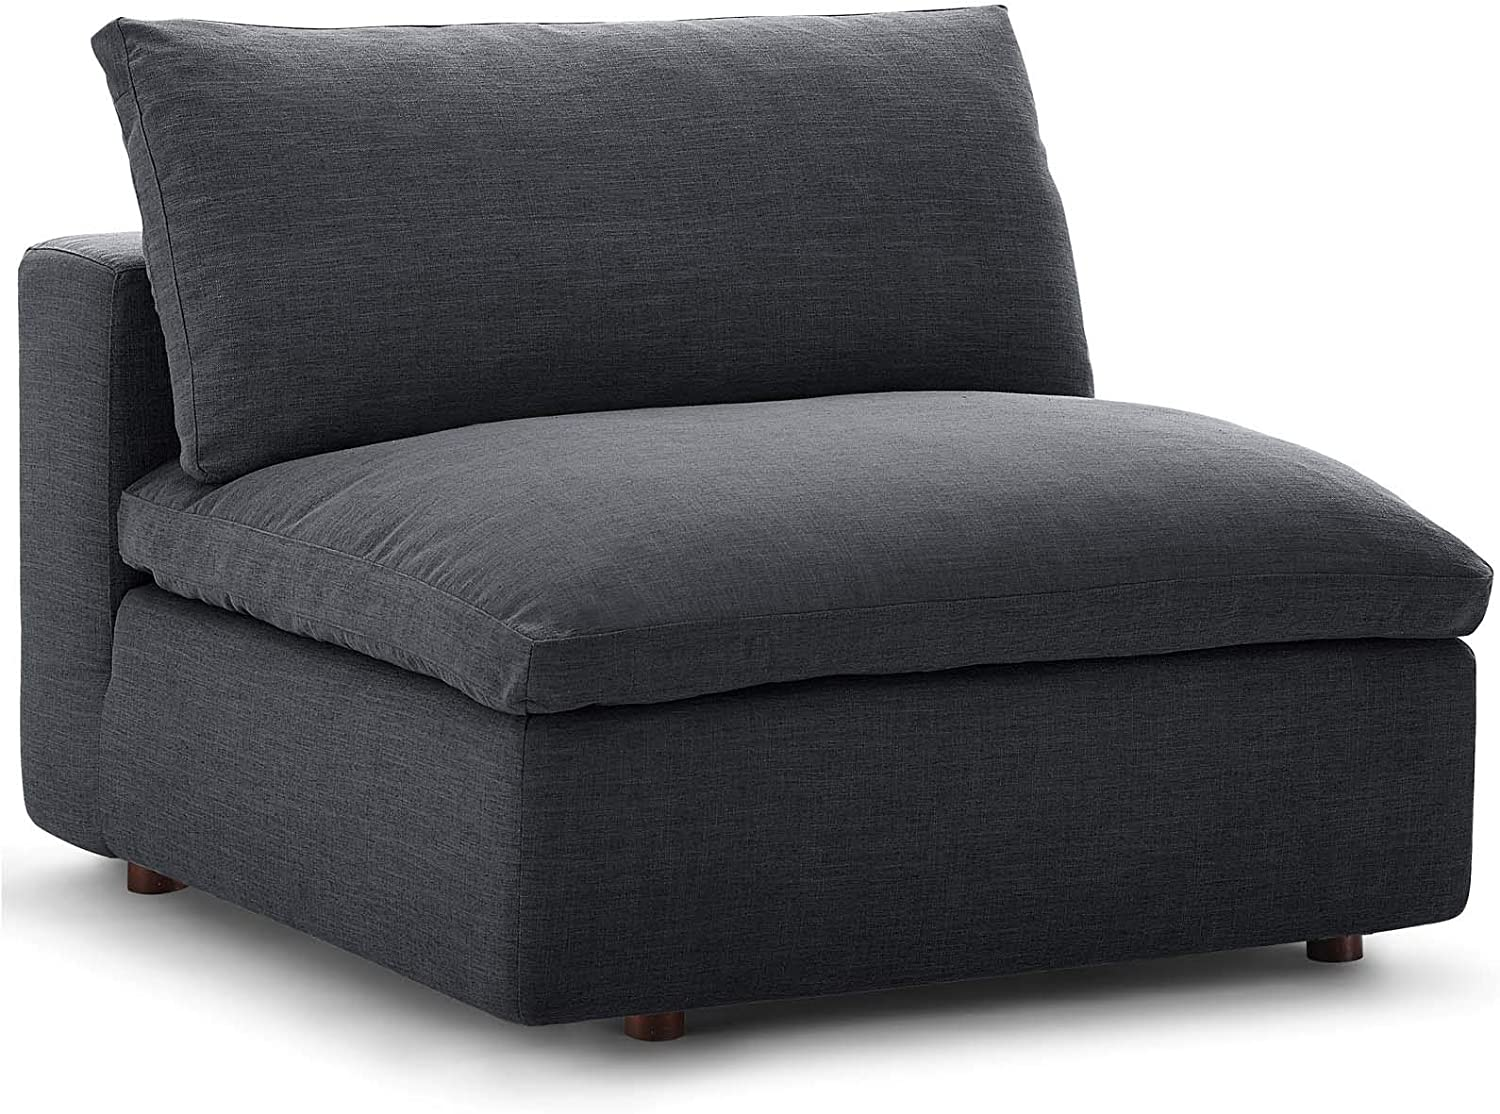 Modway Commix Down-Filled Overstuffed Upholstered Sectional Sofa Armless Chair in Gray